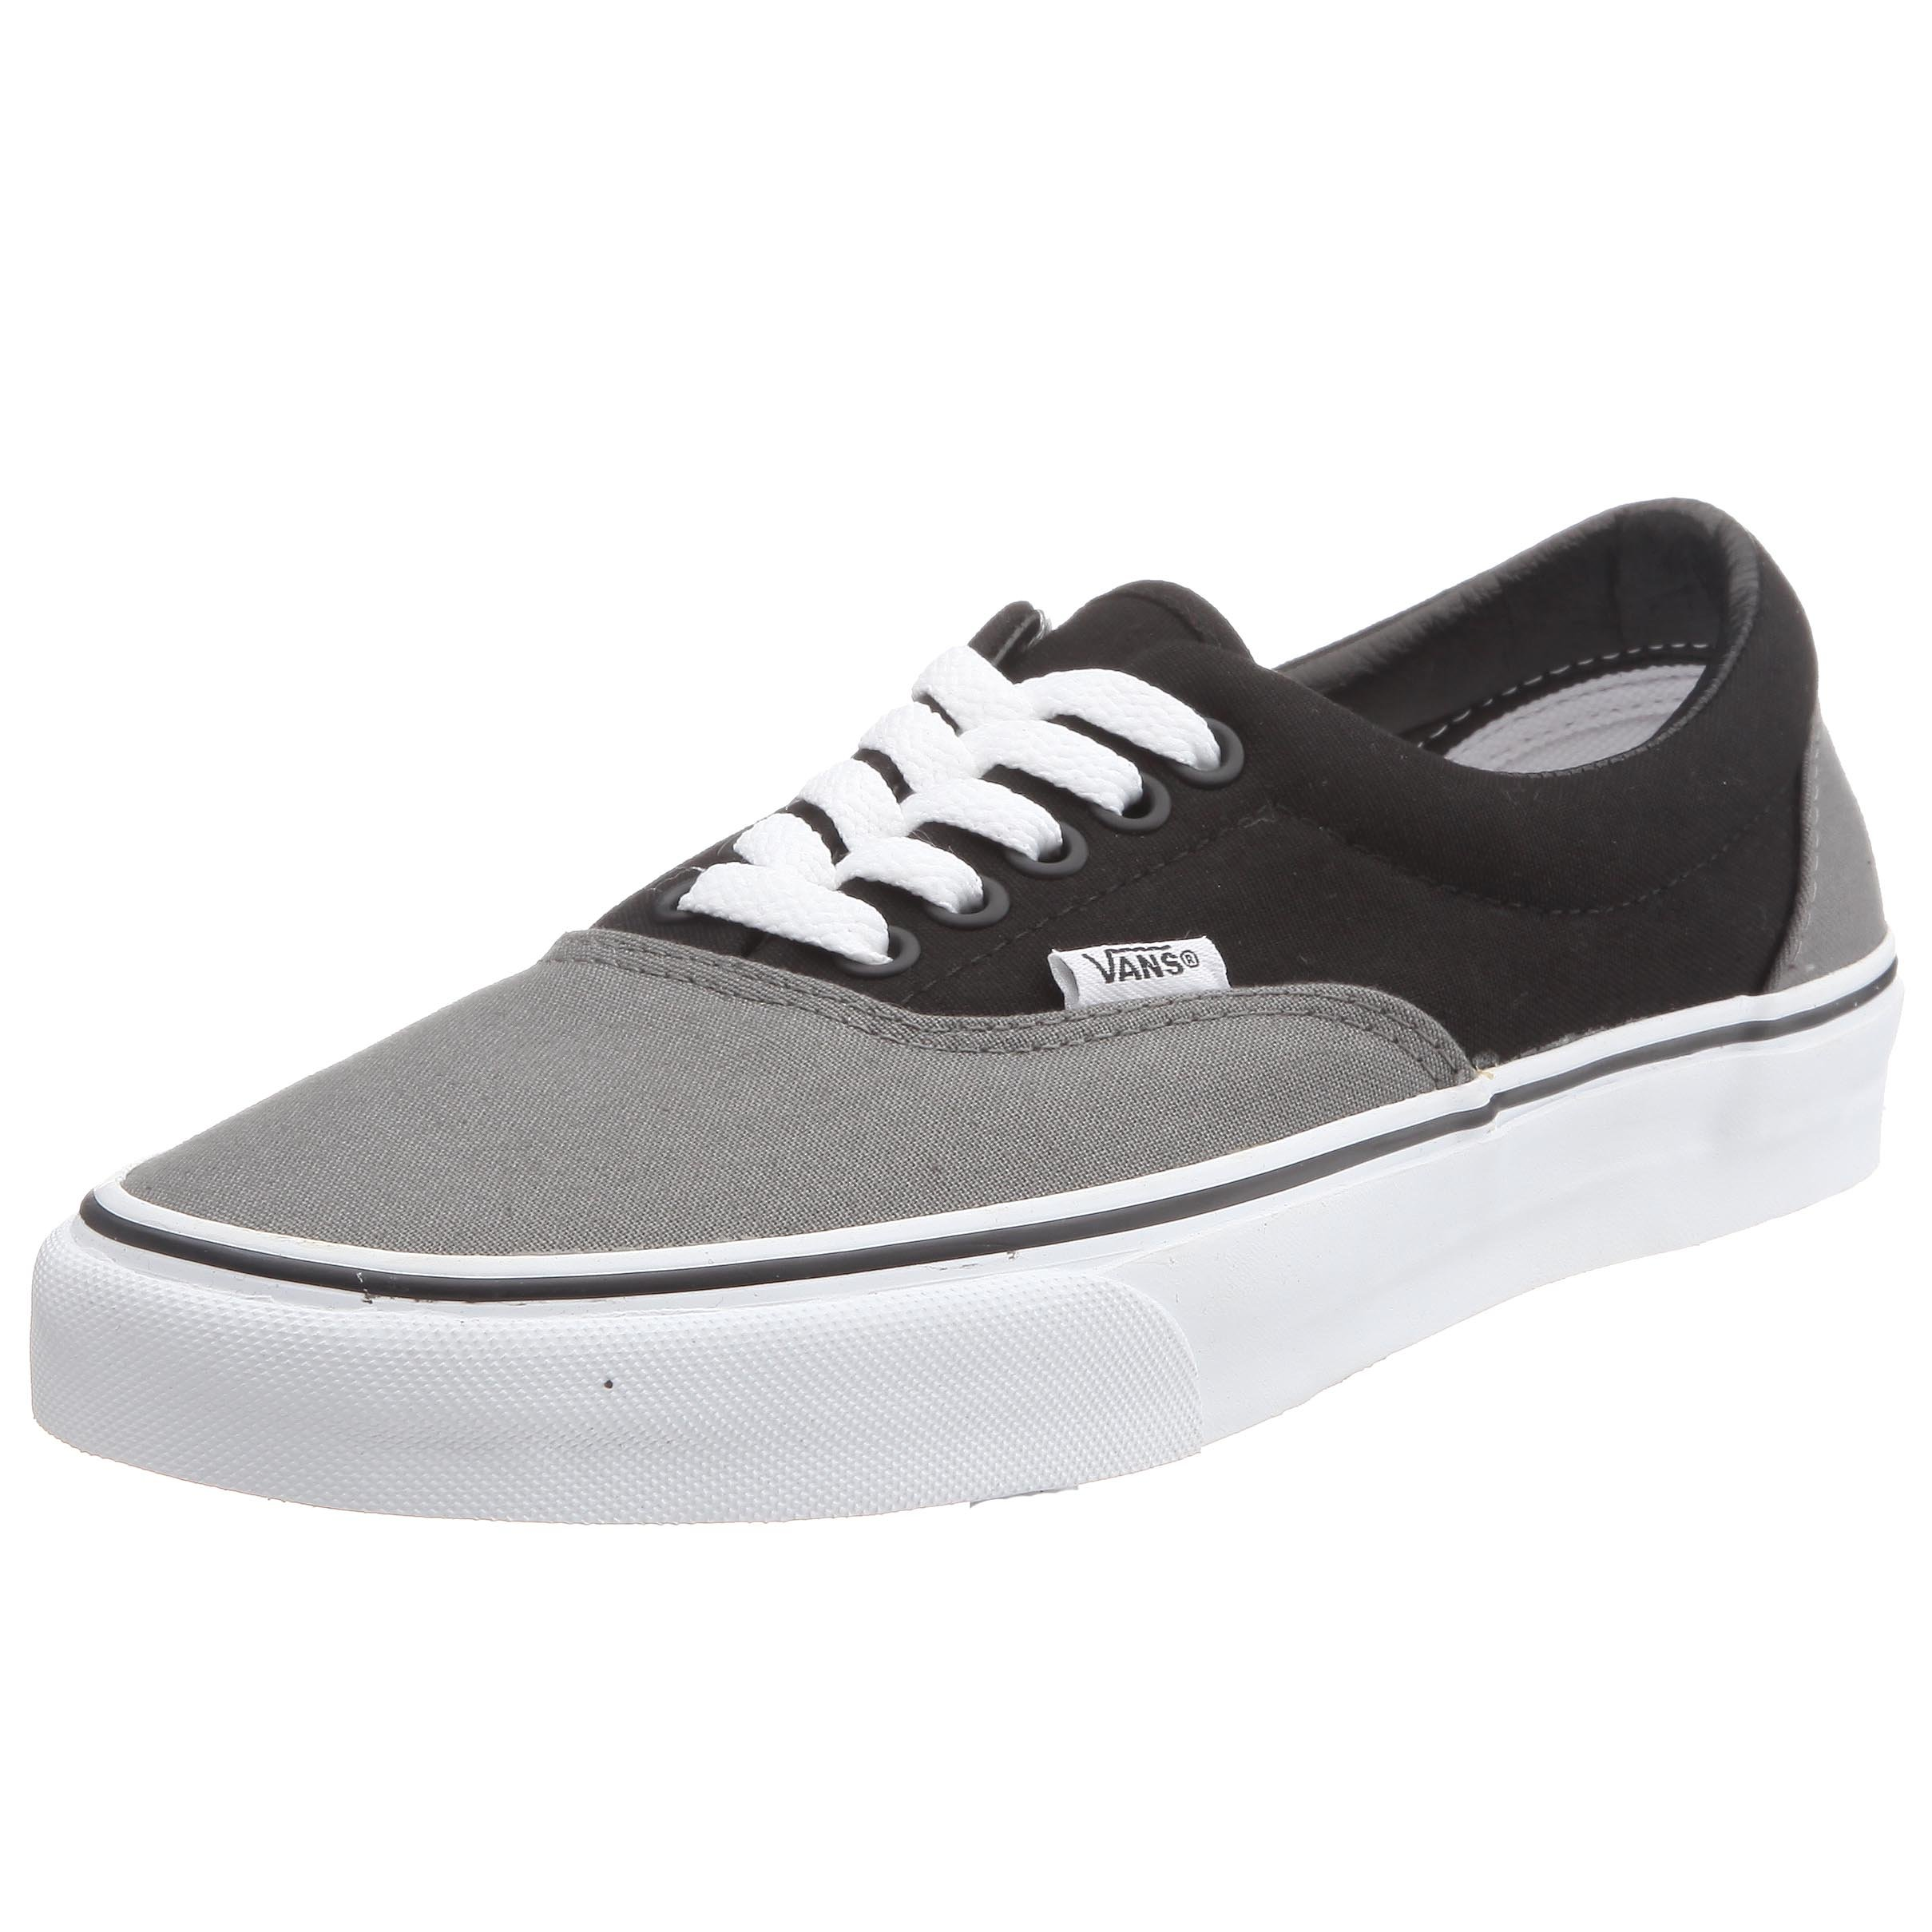 Vans VEWZNVY Unisex Era Canvas Skate Shoes,Pewter/Black,10 B(M) US Women/8.5 D(M) US Men by Vans